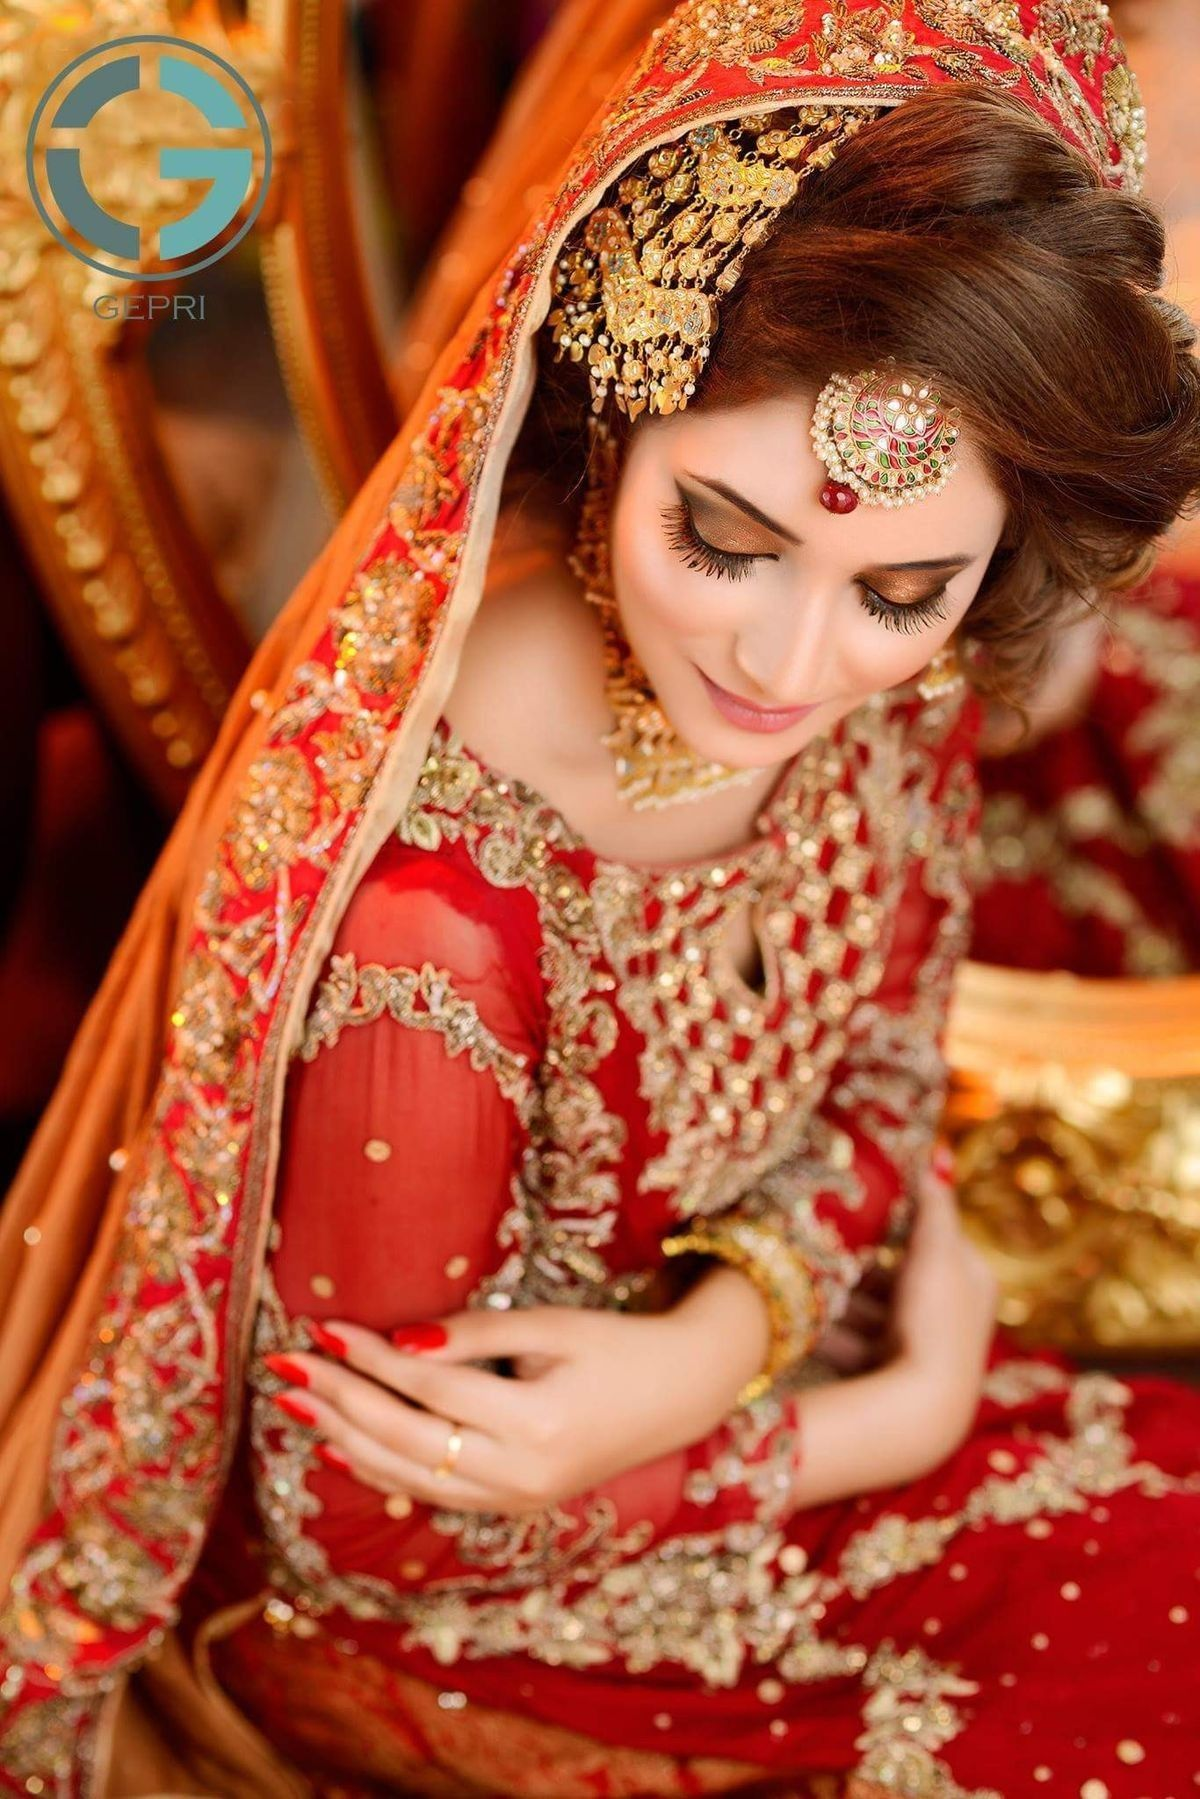 Pakistani Bridal Be T Tika Ide Jhoomar Hairstyle Board Created By Haya Maik Pakistani Bridal Makeup Pakistani Bridal Wear Bridal Dress Design